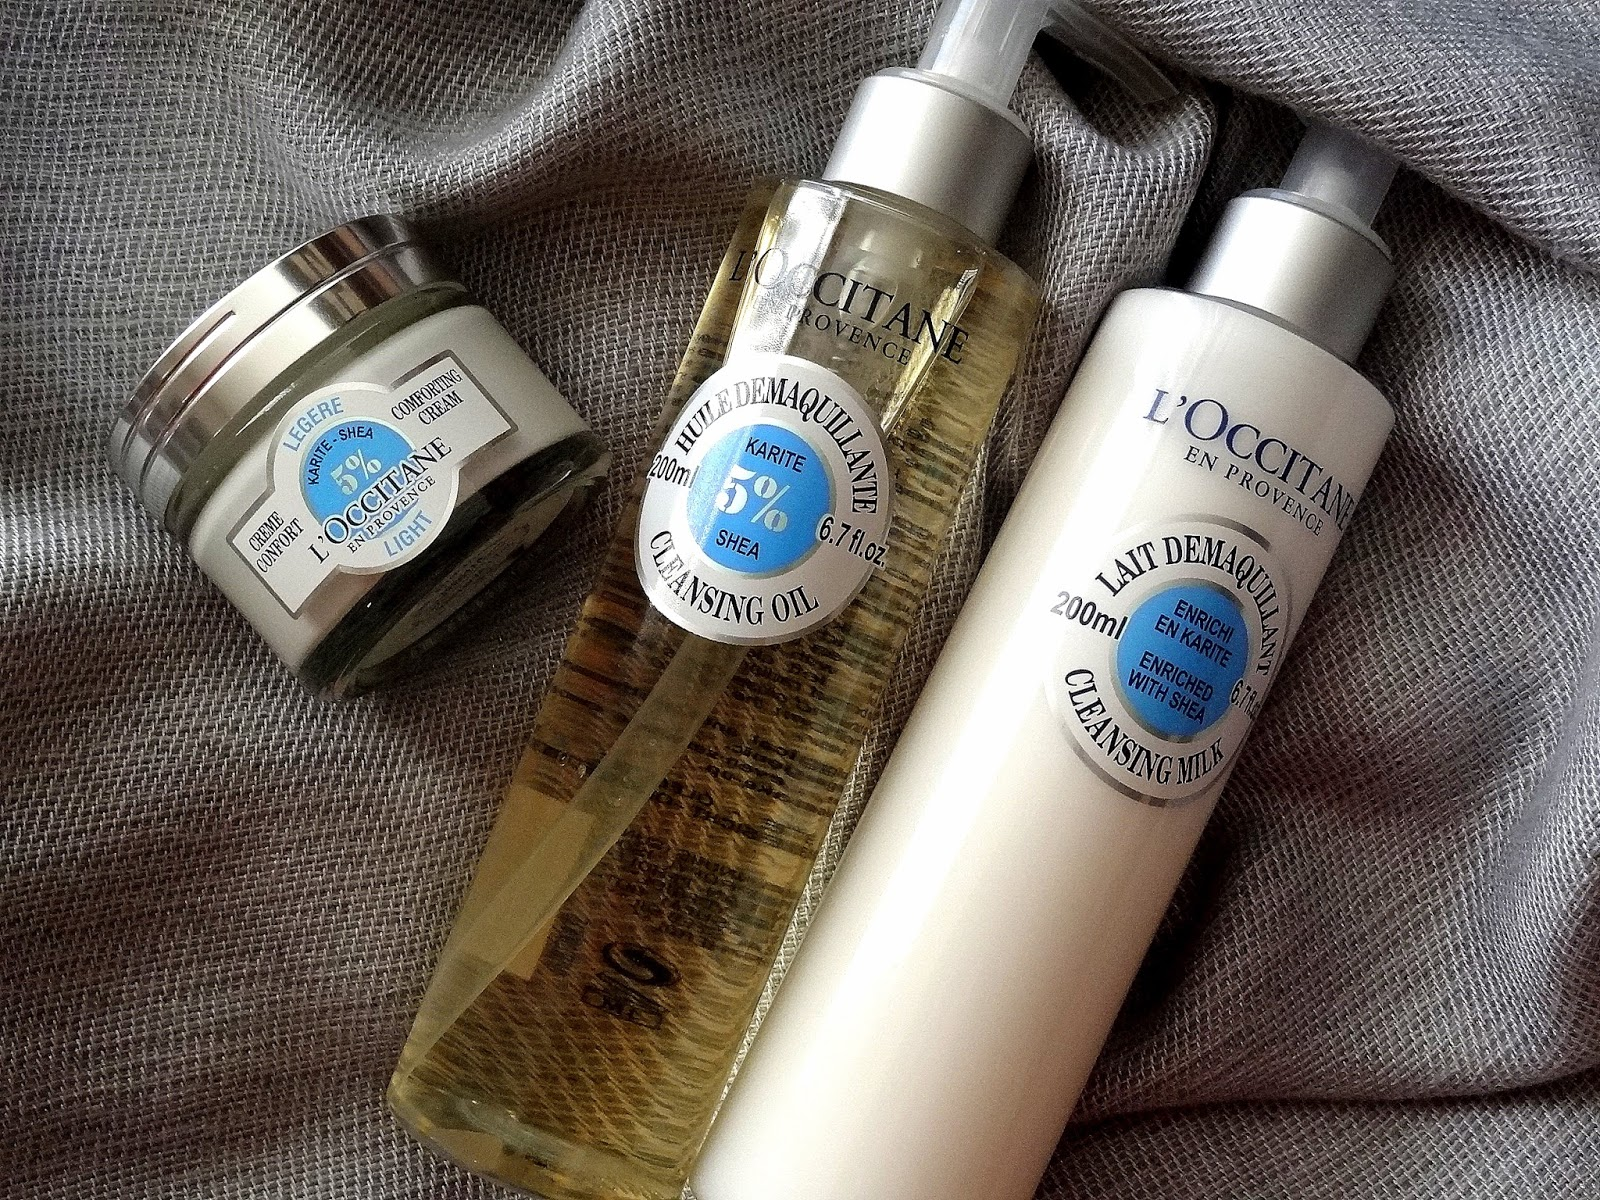 L'Occitane Shea Butter Comforting Skincare Collection | Cleansing Milk, Cleansing Oil and Light Comforting Cream